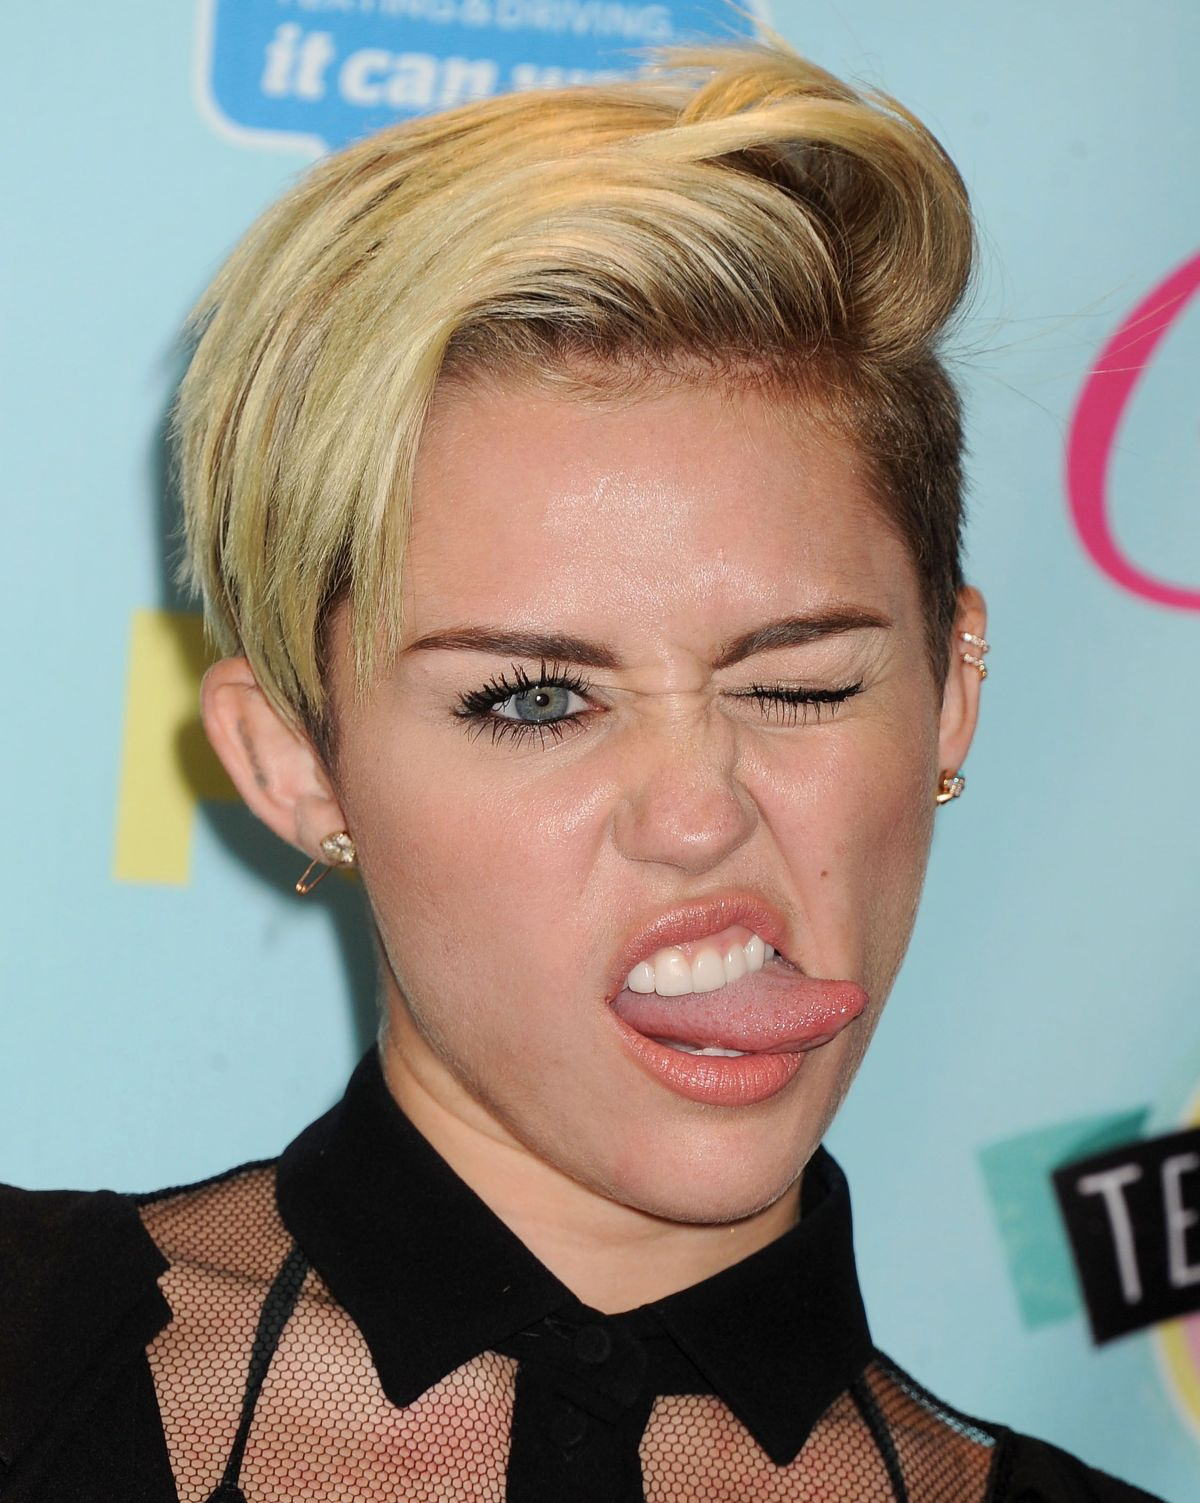 Miley Cyrus At 2013 Teen Choice Awards In Universal City ... Miley Cyrus